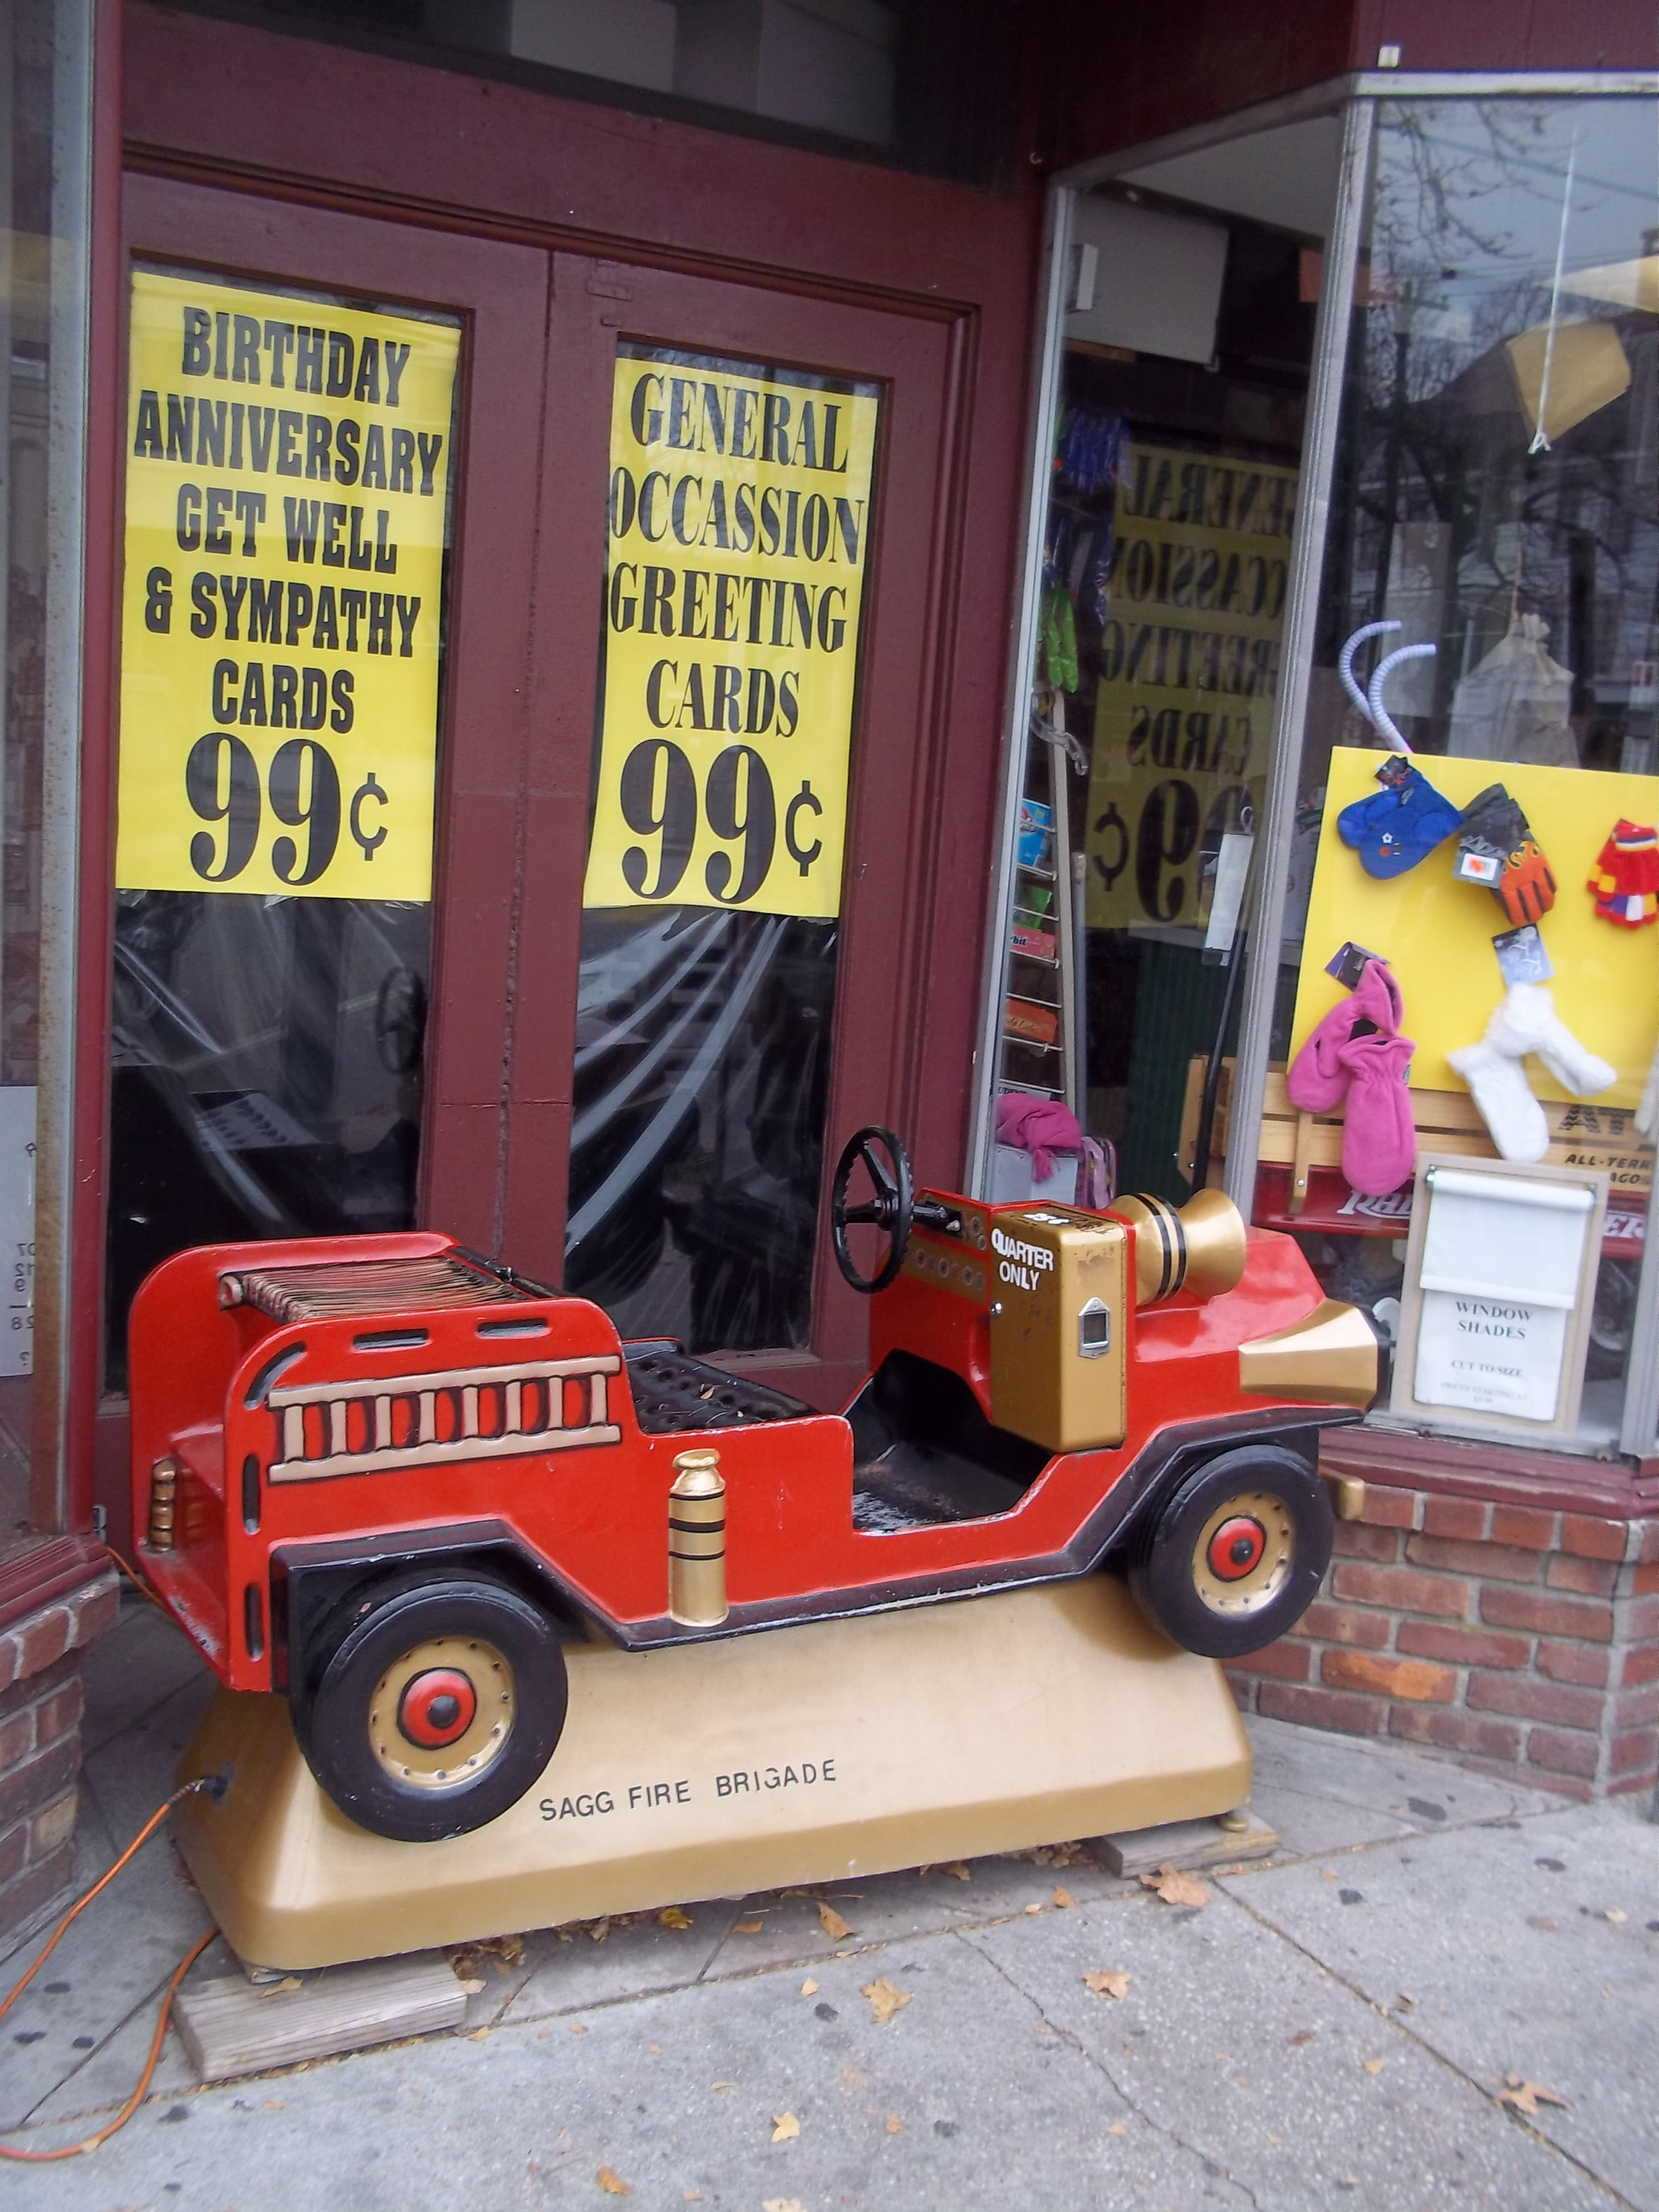 Does The Sag Harbor Fire Dept Collect Toys For Christmas 2020 Hamptons Tradition: Shopping the 5 and 10 cent Sag Harbor Variety